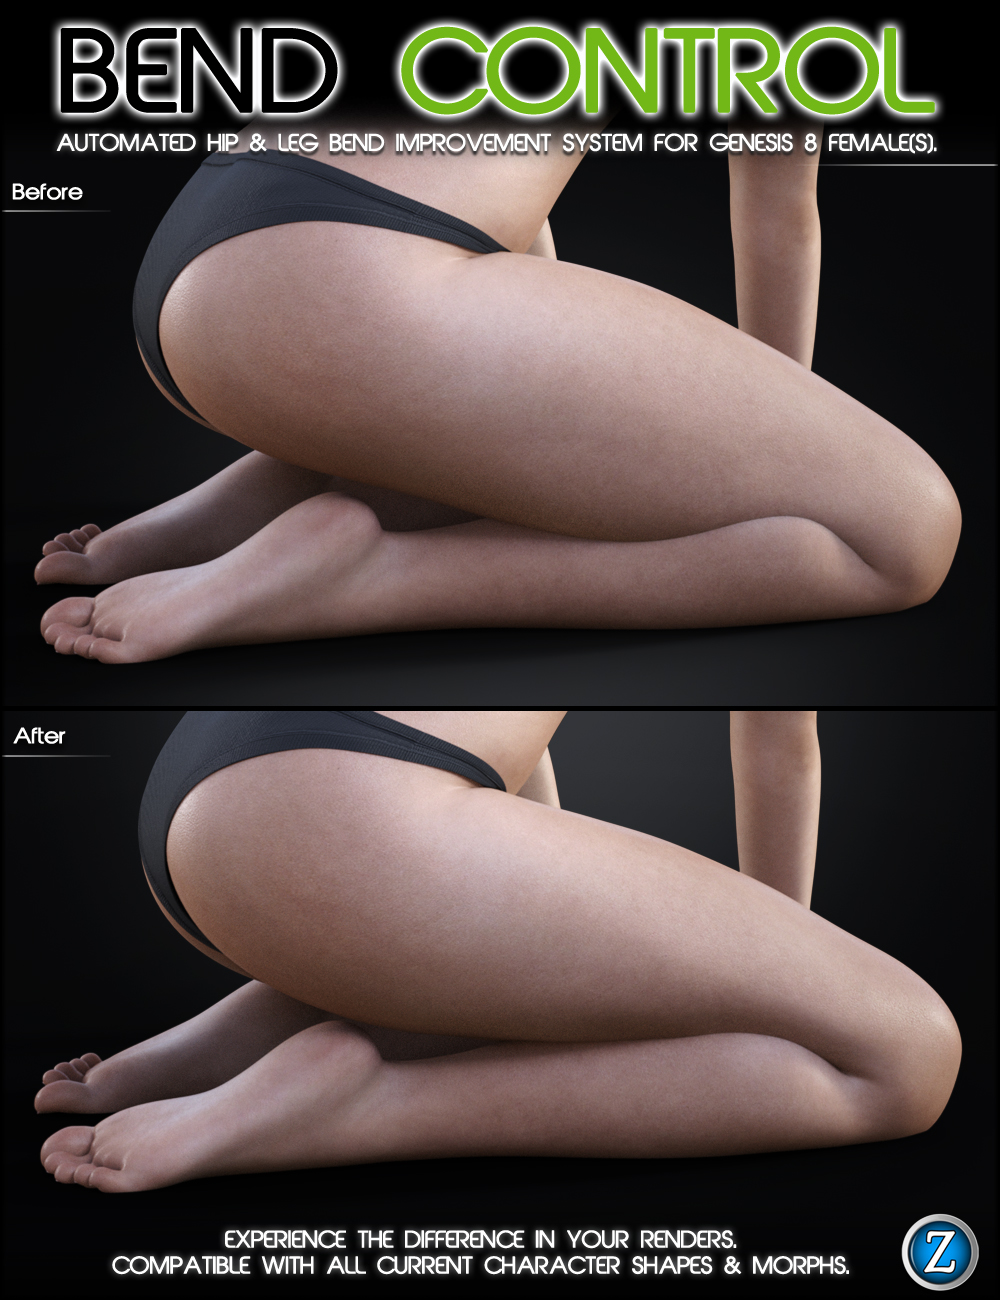 Bend Control for Genesis 8 Female(s) by: Zev0, 3D Models by Daz 3D